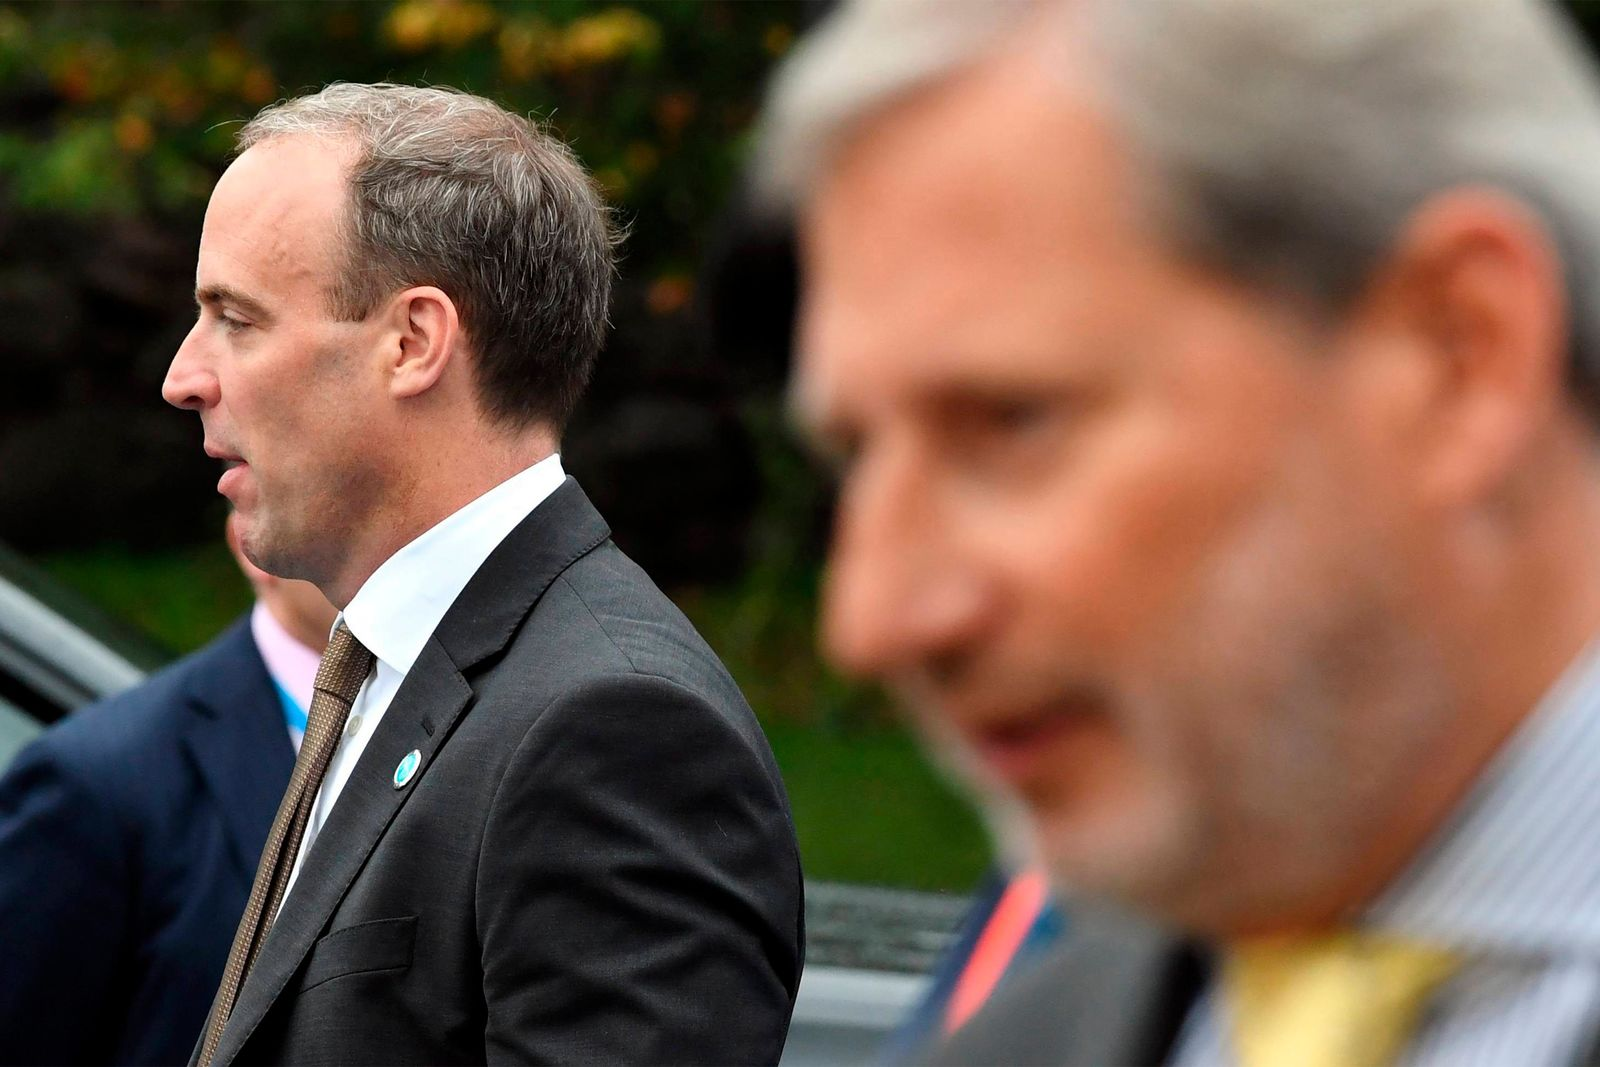 British Foreign Secretary Dominic Raab, left, speaks to the media as he arrives to the Informal Meeting of EU Foreign Ministers in Helsinki, Finland, on Friday, Aug. 30, 2019.{ } (Jussi Nukari/Lehtikuva via AP)